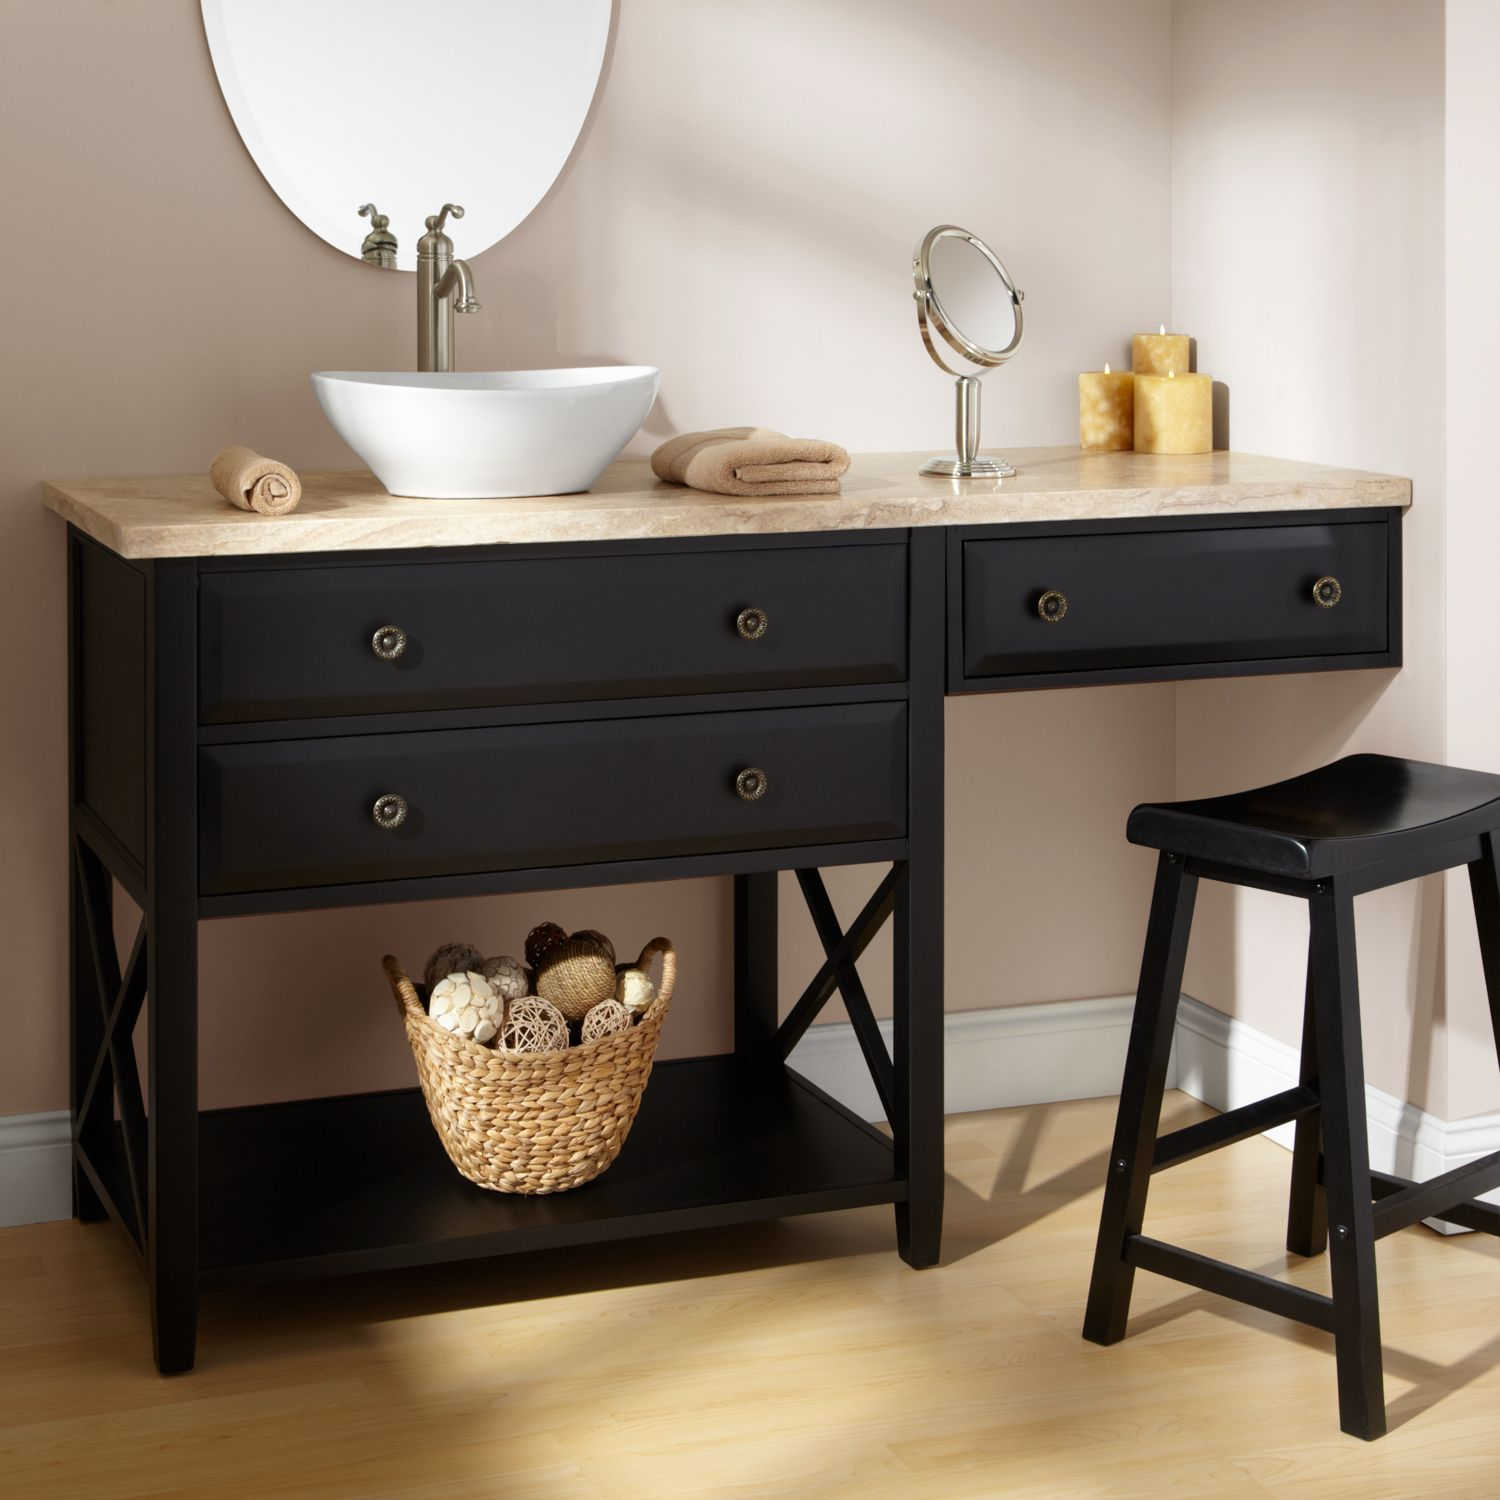 Black Makeup Vanity Table 60 Quot Clinton Black Vanity For Vessel Sink With Makeup Area